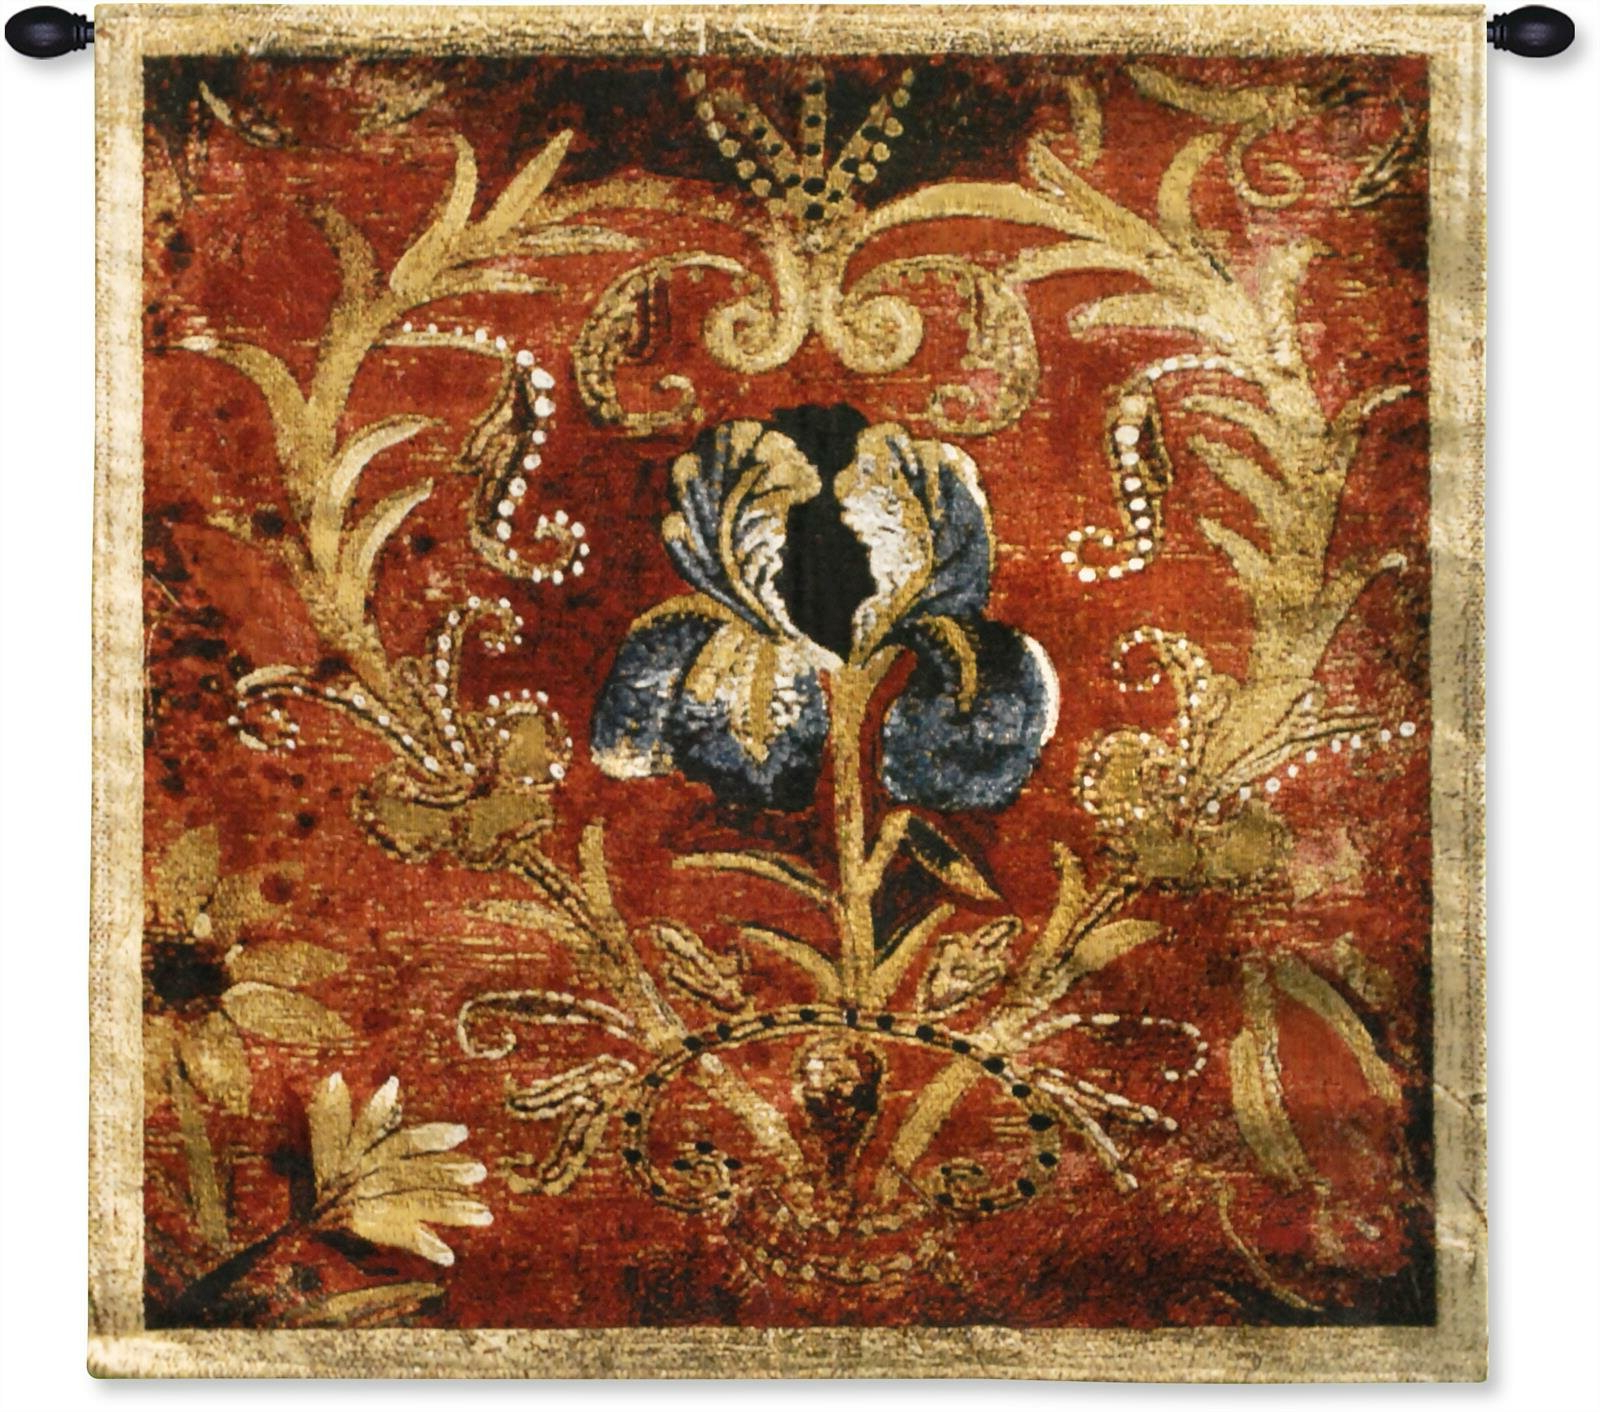 Most Recent Blended Fabric Bellagio Scalinata Wall Hangings Within Bel Tesoro Iv Wall Tapestry (View 18 of 20)